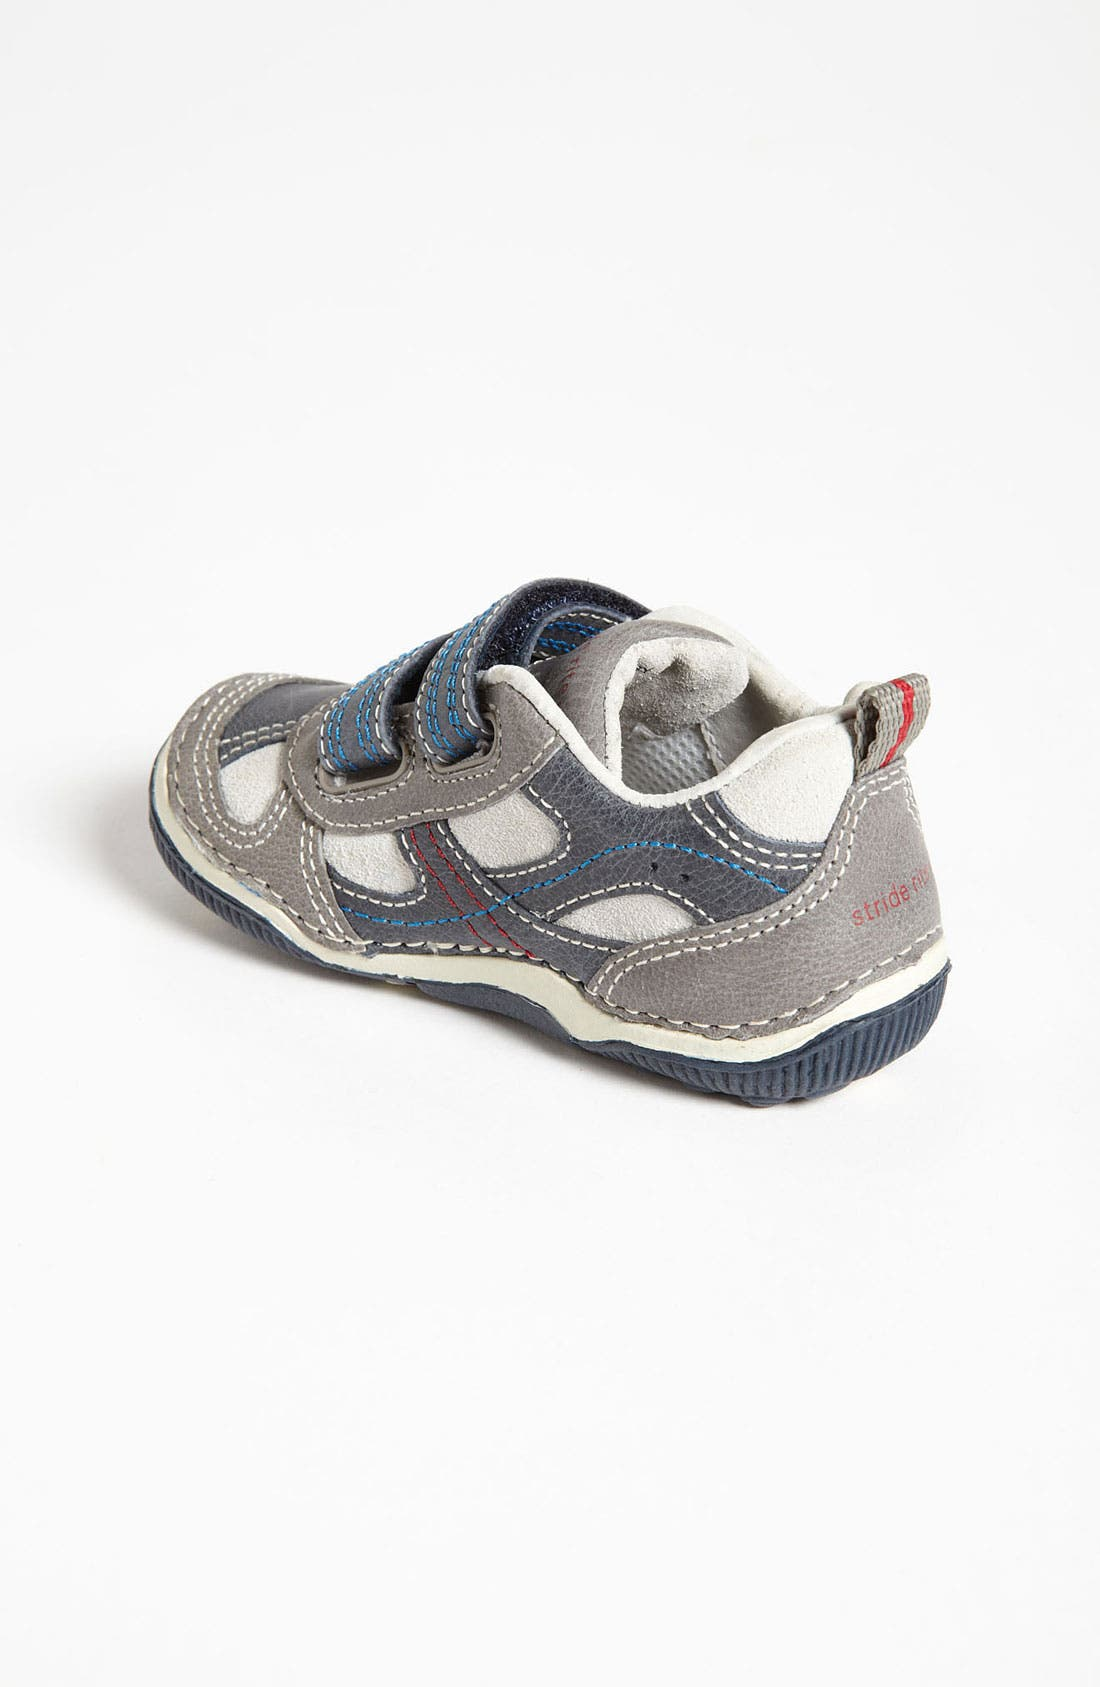 Alternate Image 2  - Stride Rite 'Woody' Sneaker (Baby, Walker & Toddler)